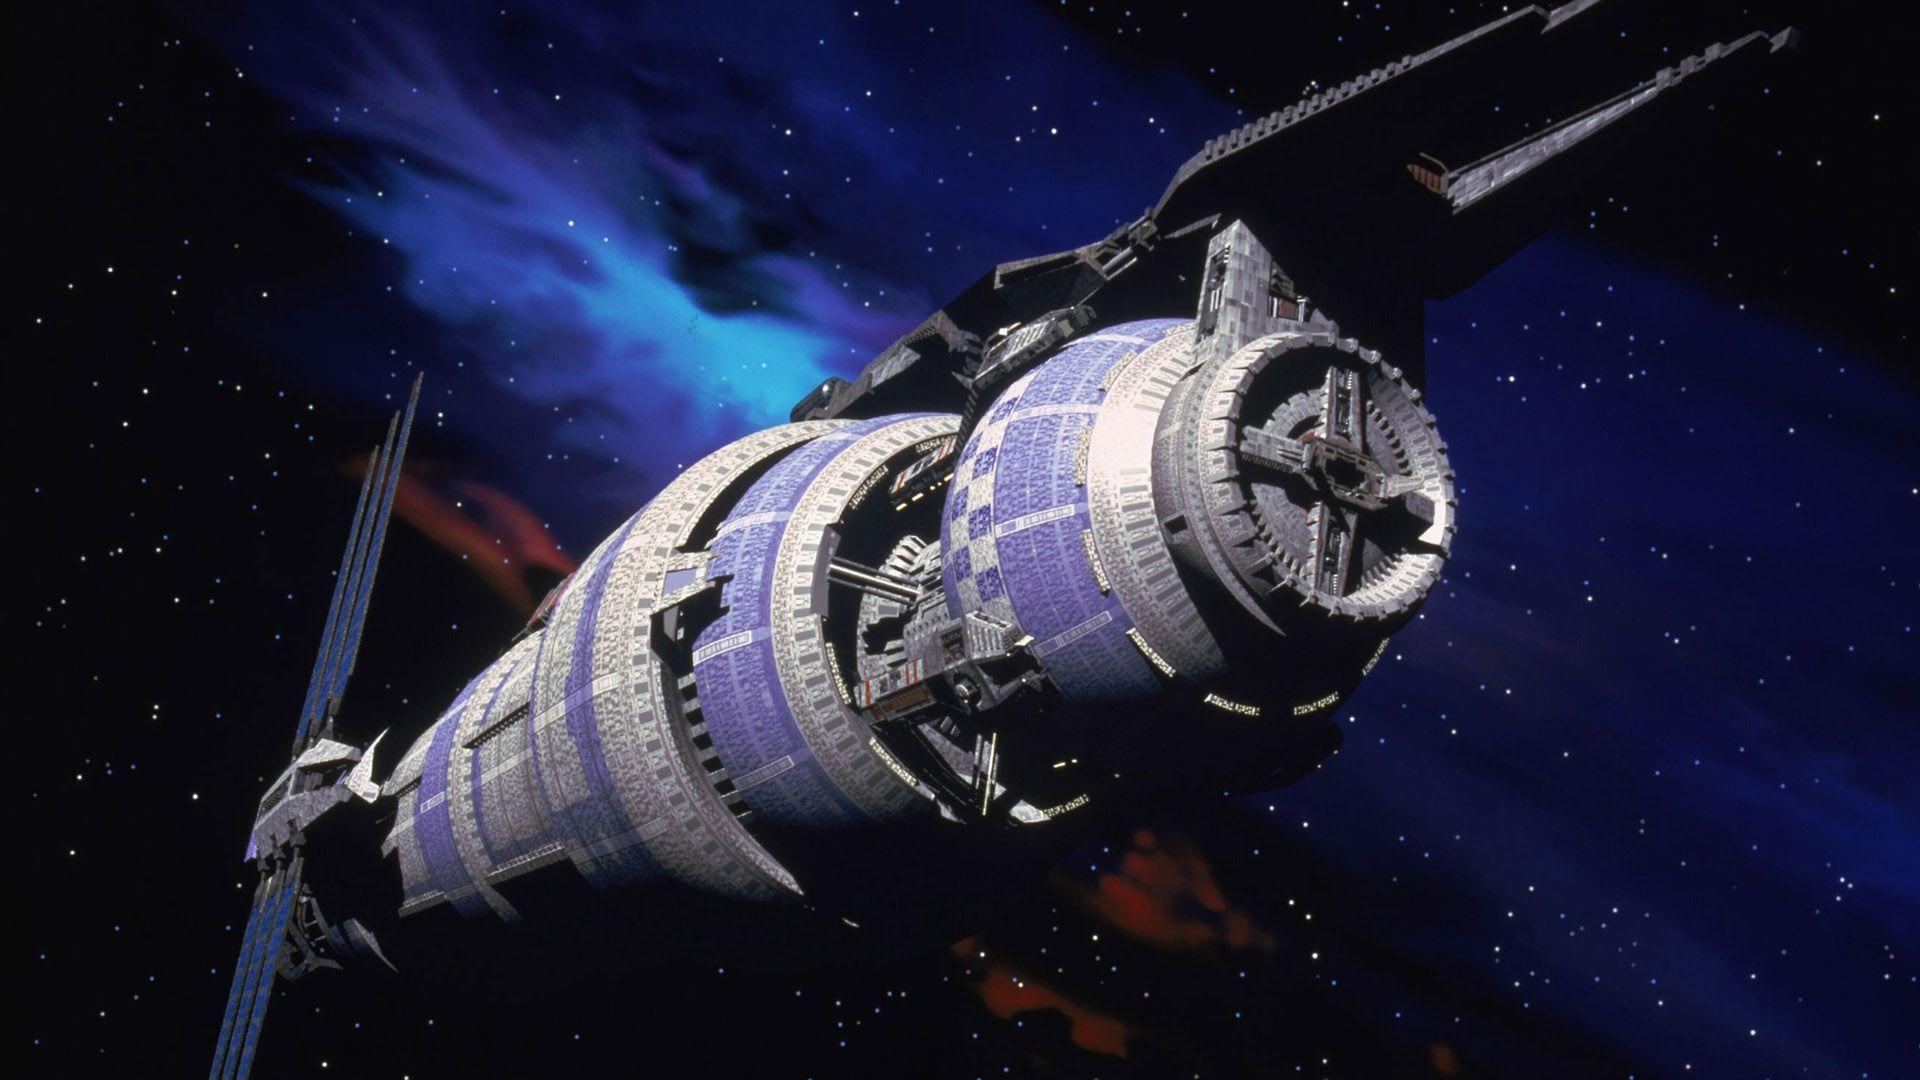 star space station freedom wallpaper - photo #23